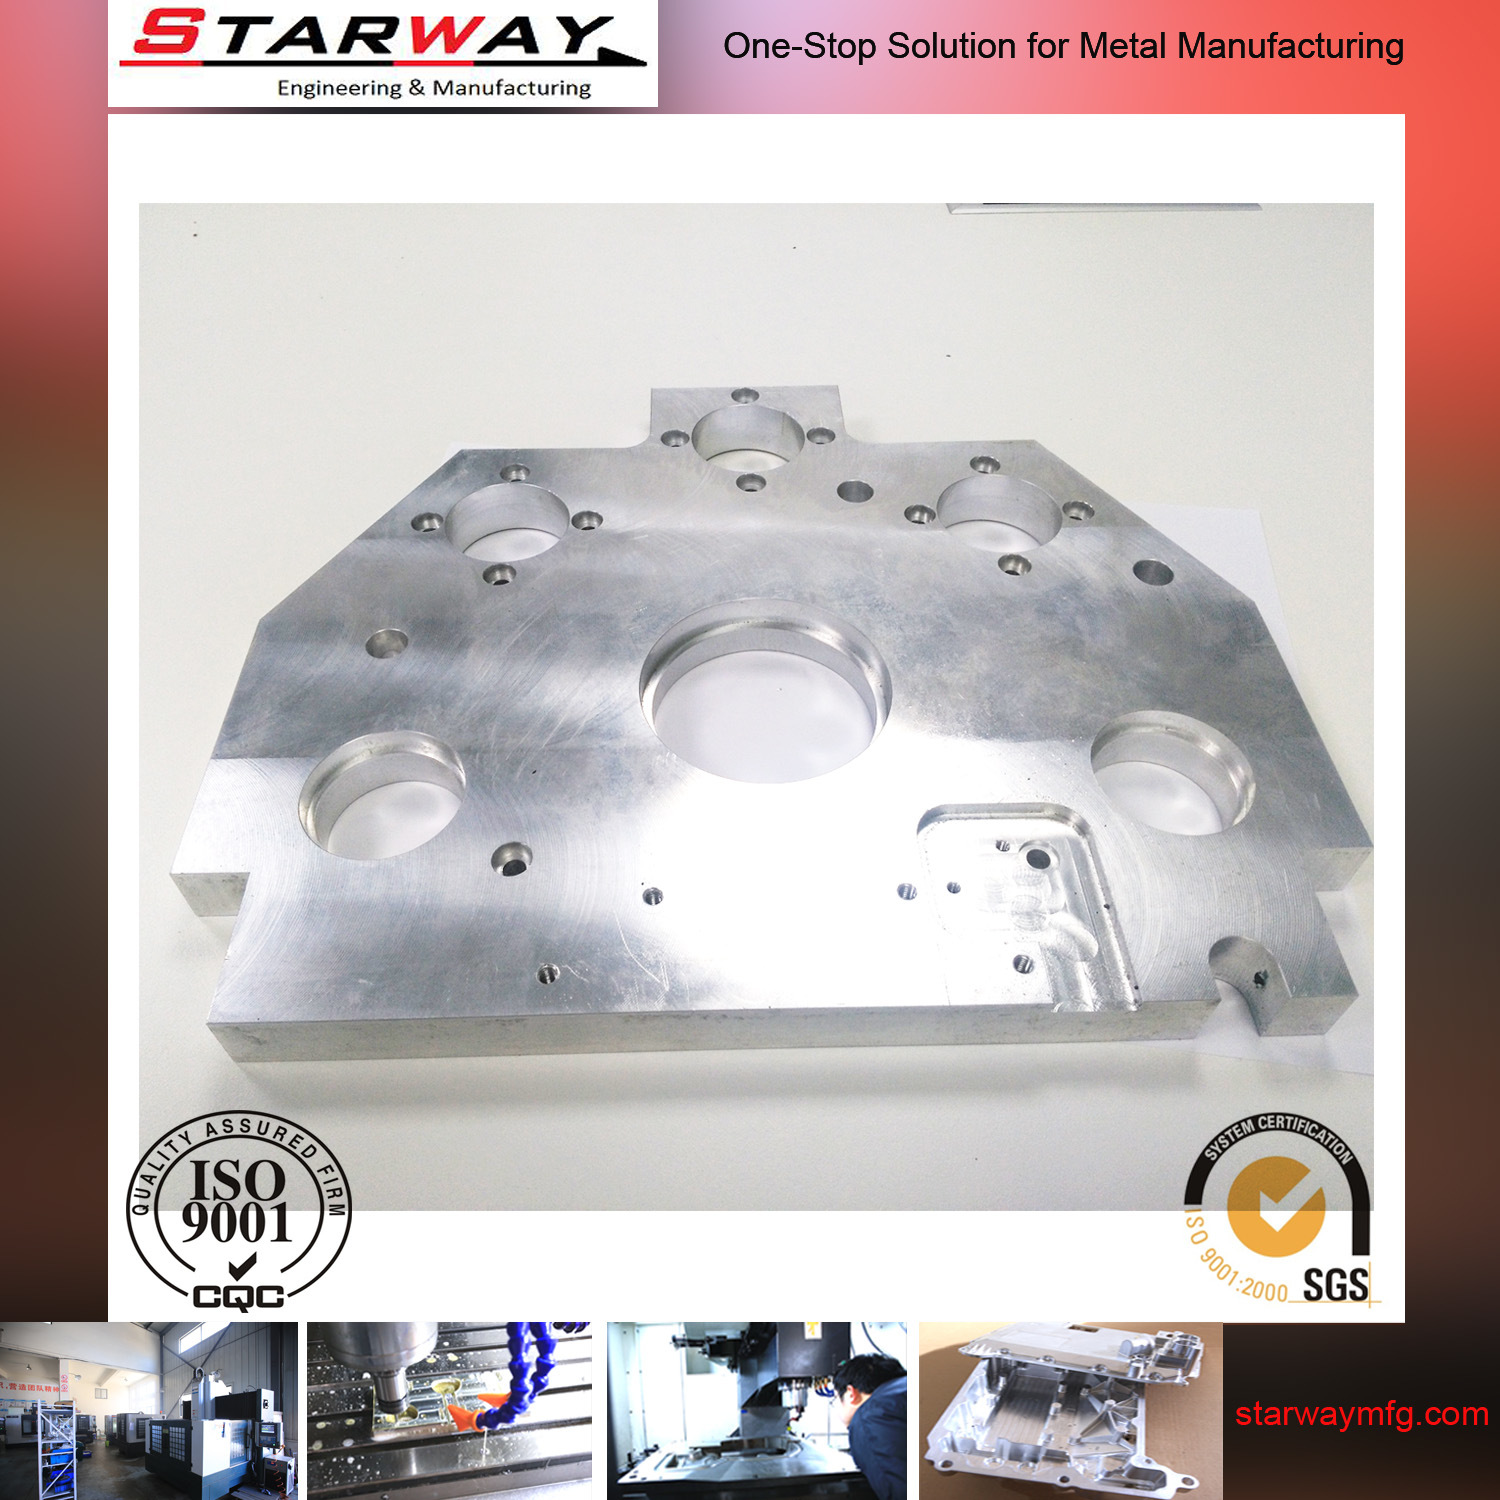 OEM Metal Cutting Machining, CNC Machining, Precision Machining